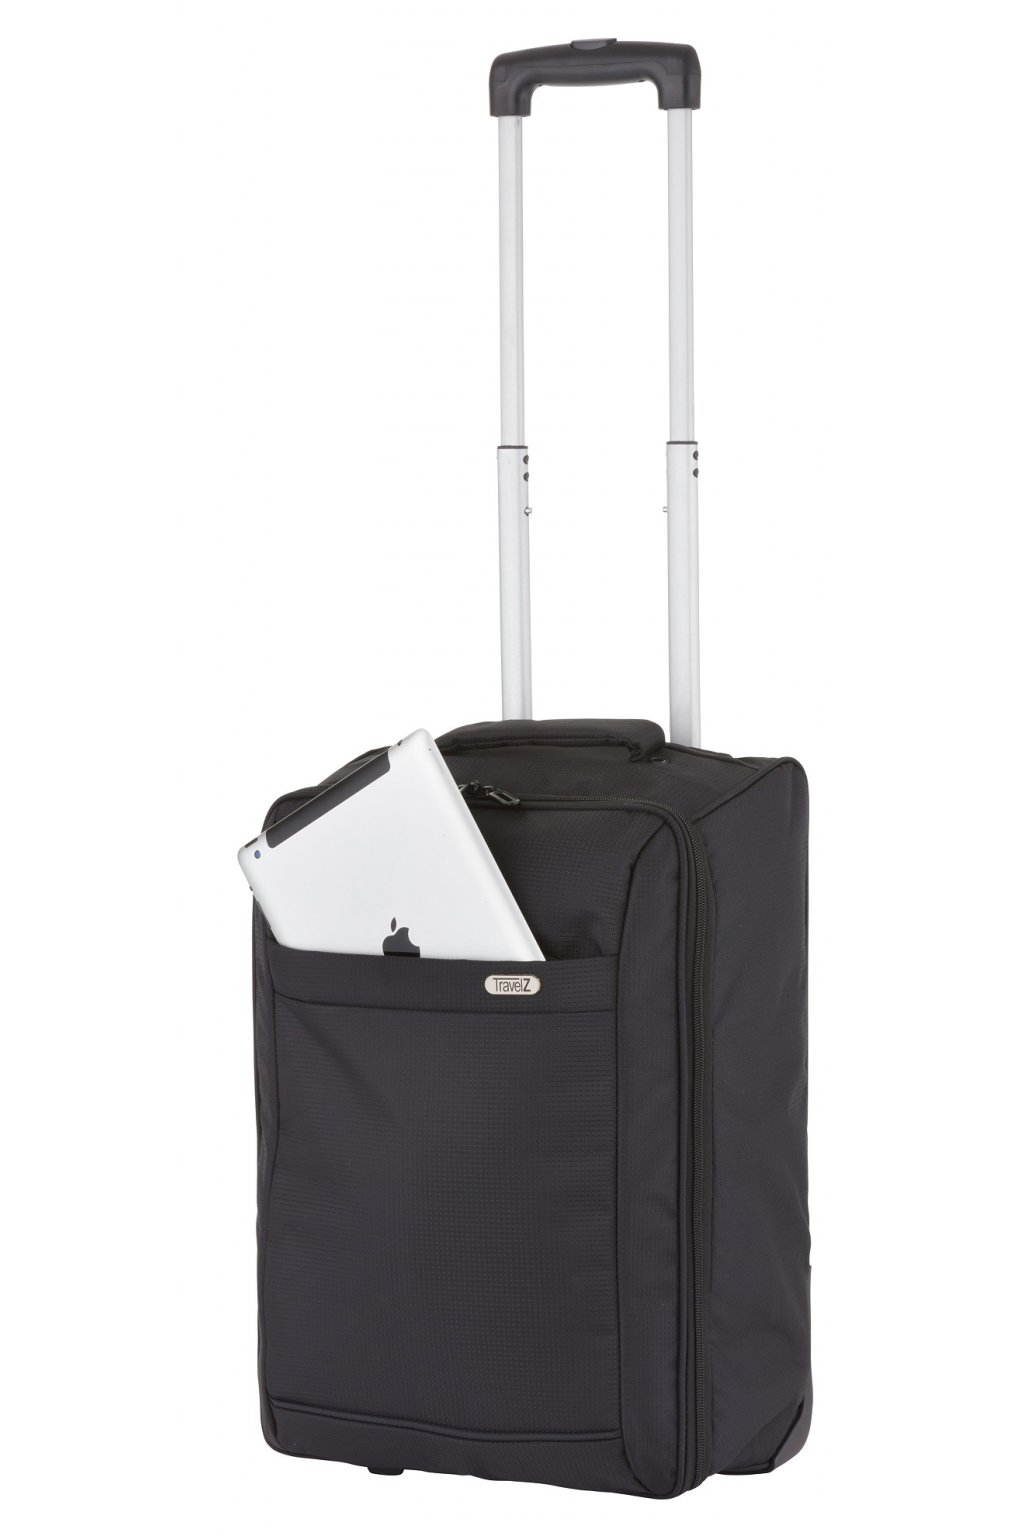 kufrland travelz weekendtroley black (6)